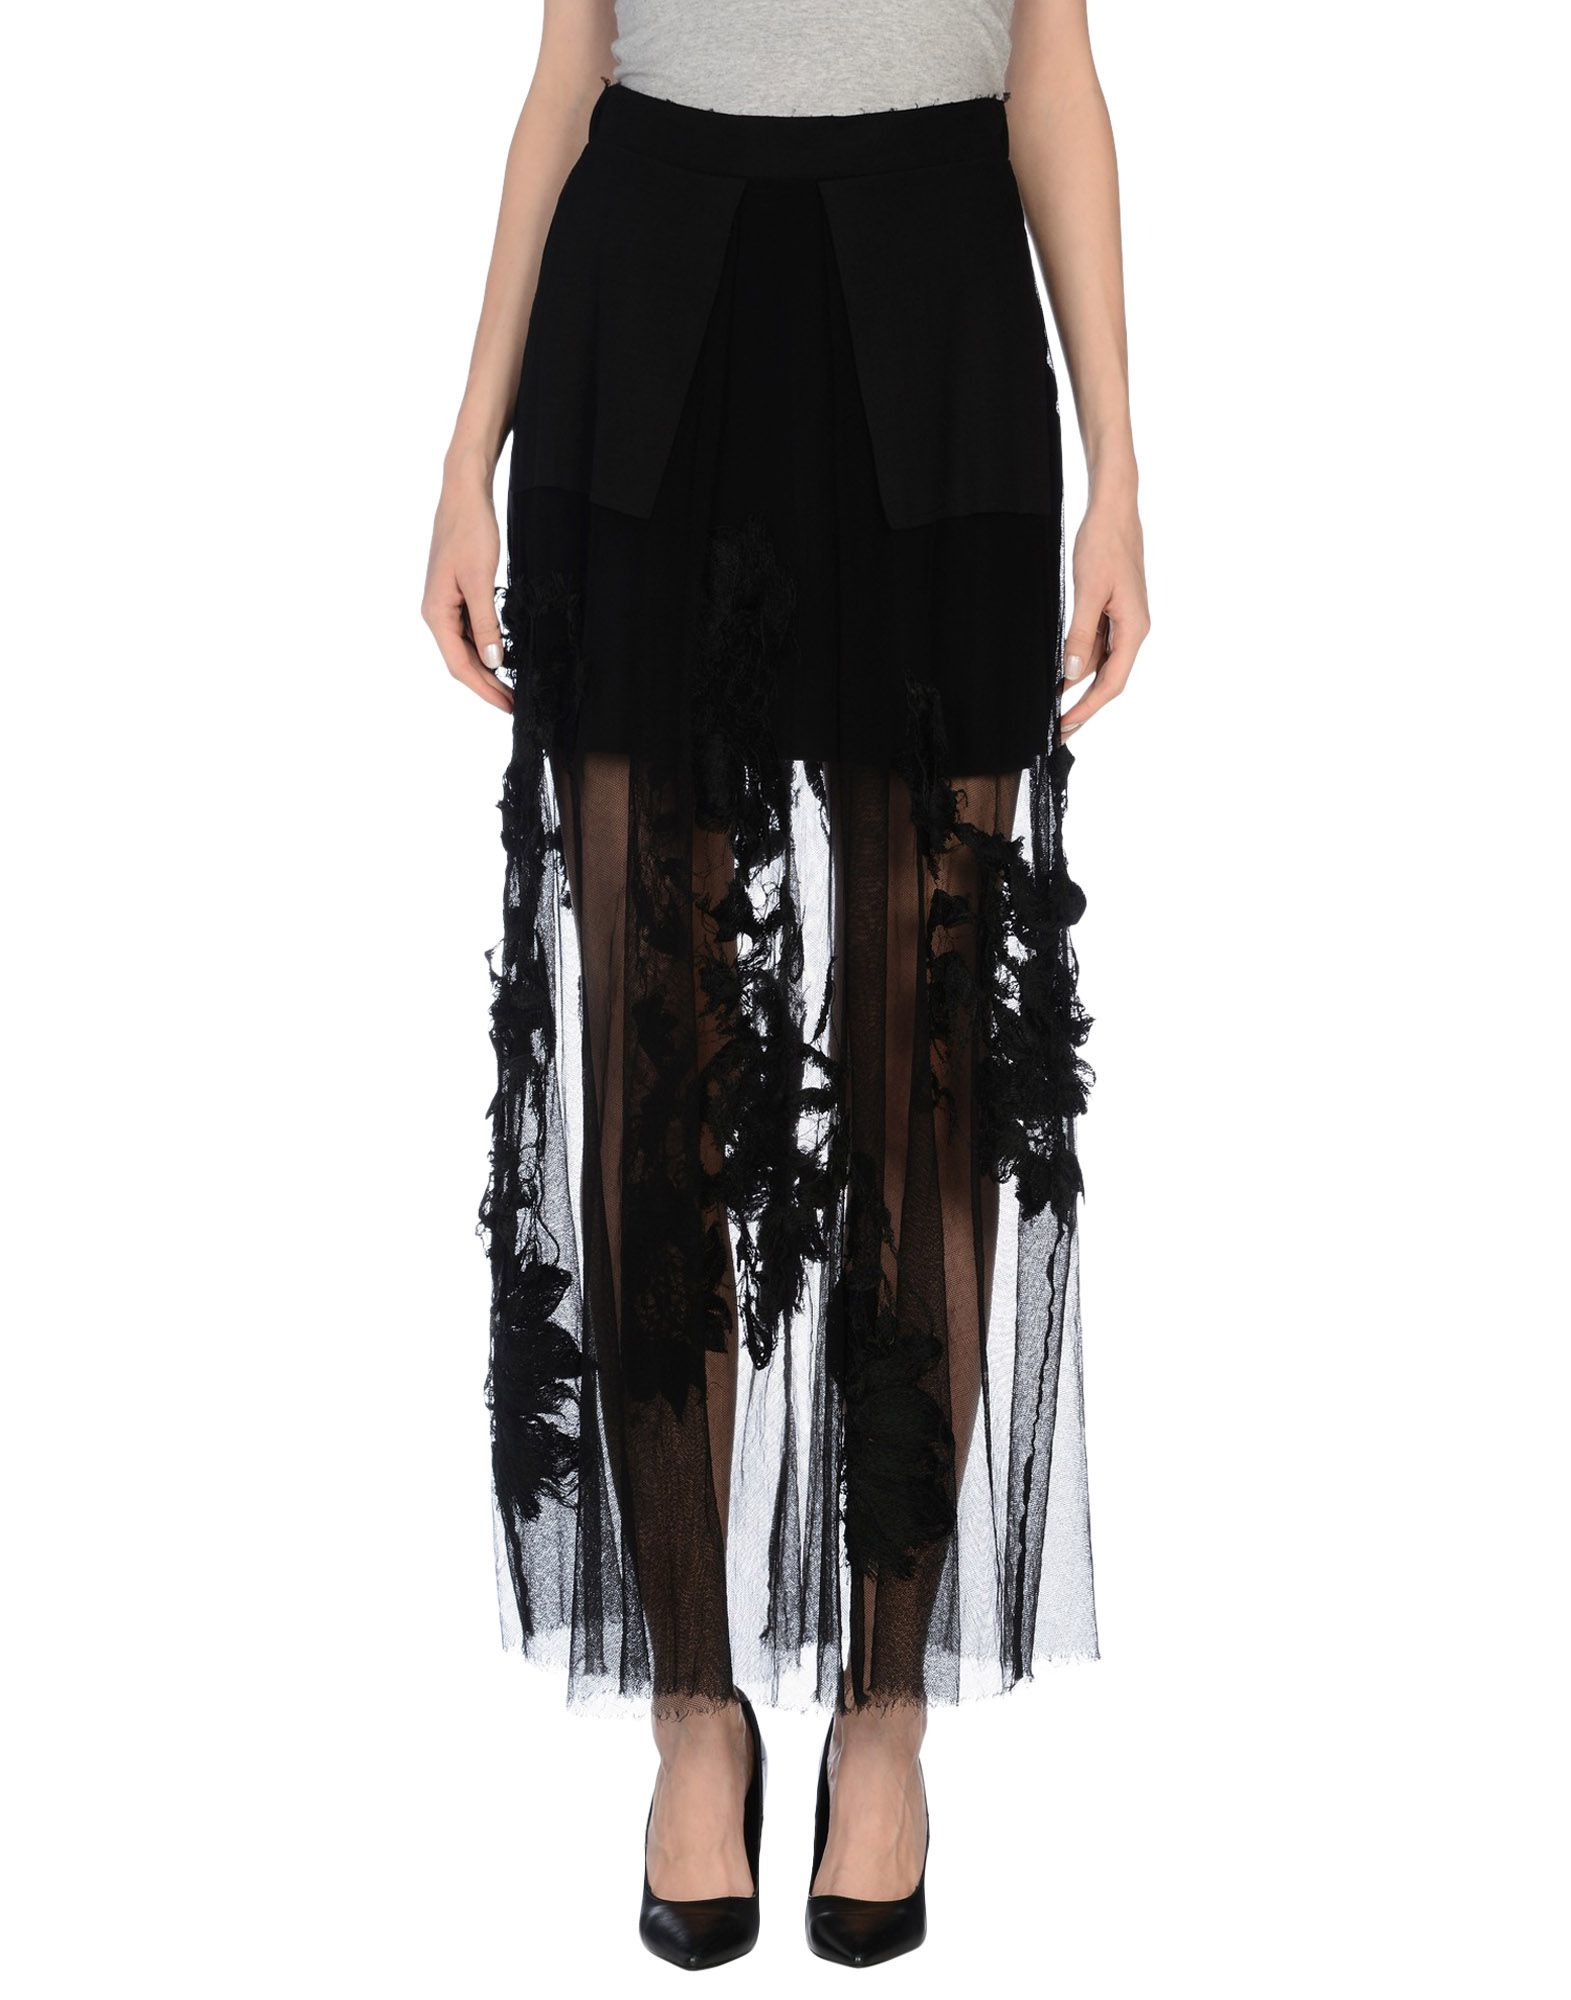 Find black sheer maxi skirt at ShopStyle. Shop the latest collection of black sheer maxi skirt from the most popular stores - all in one place.